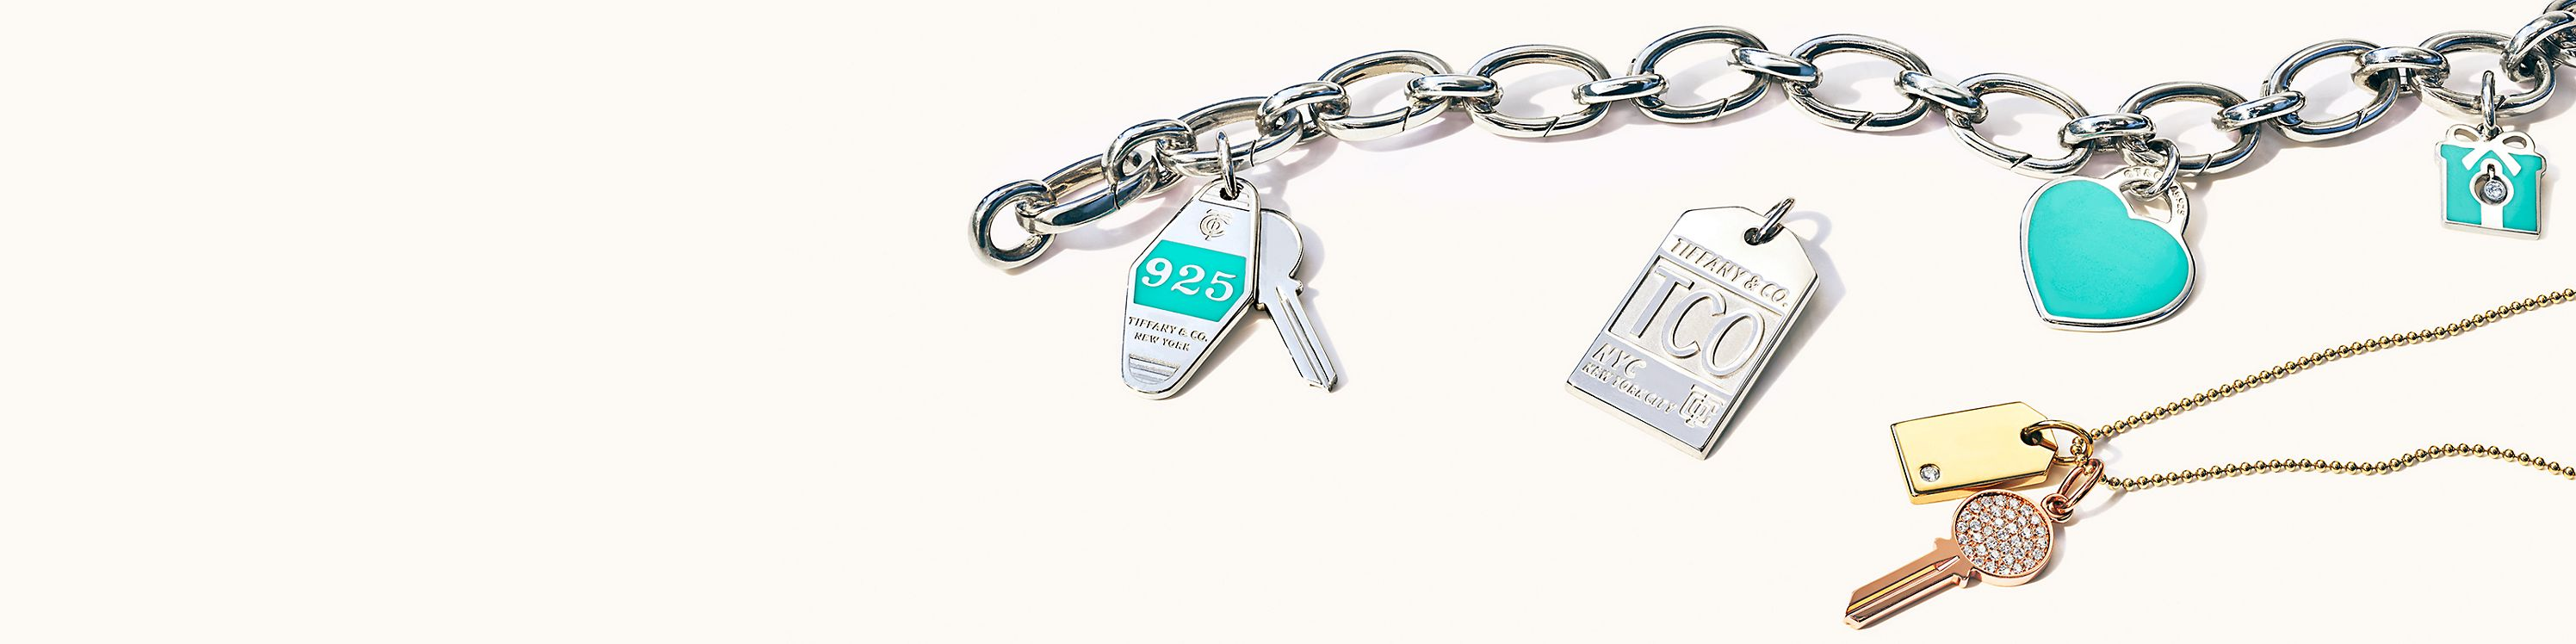 48565789c40e4 Charms | Customise Bracelets & Necklaces | Tiffany & Co.